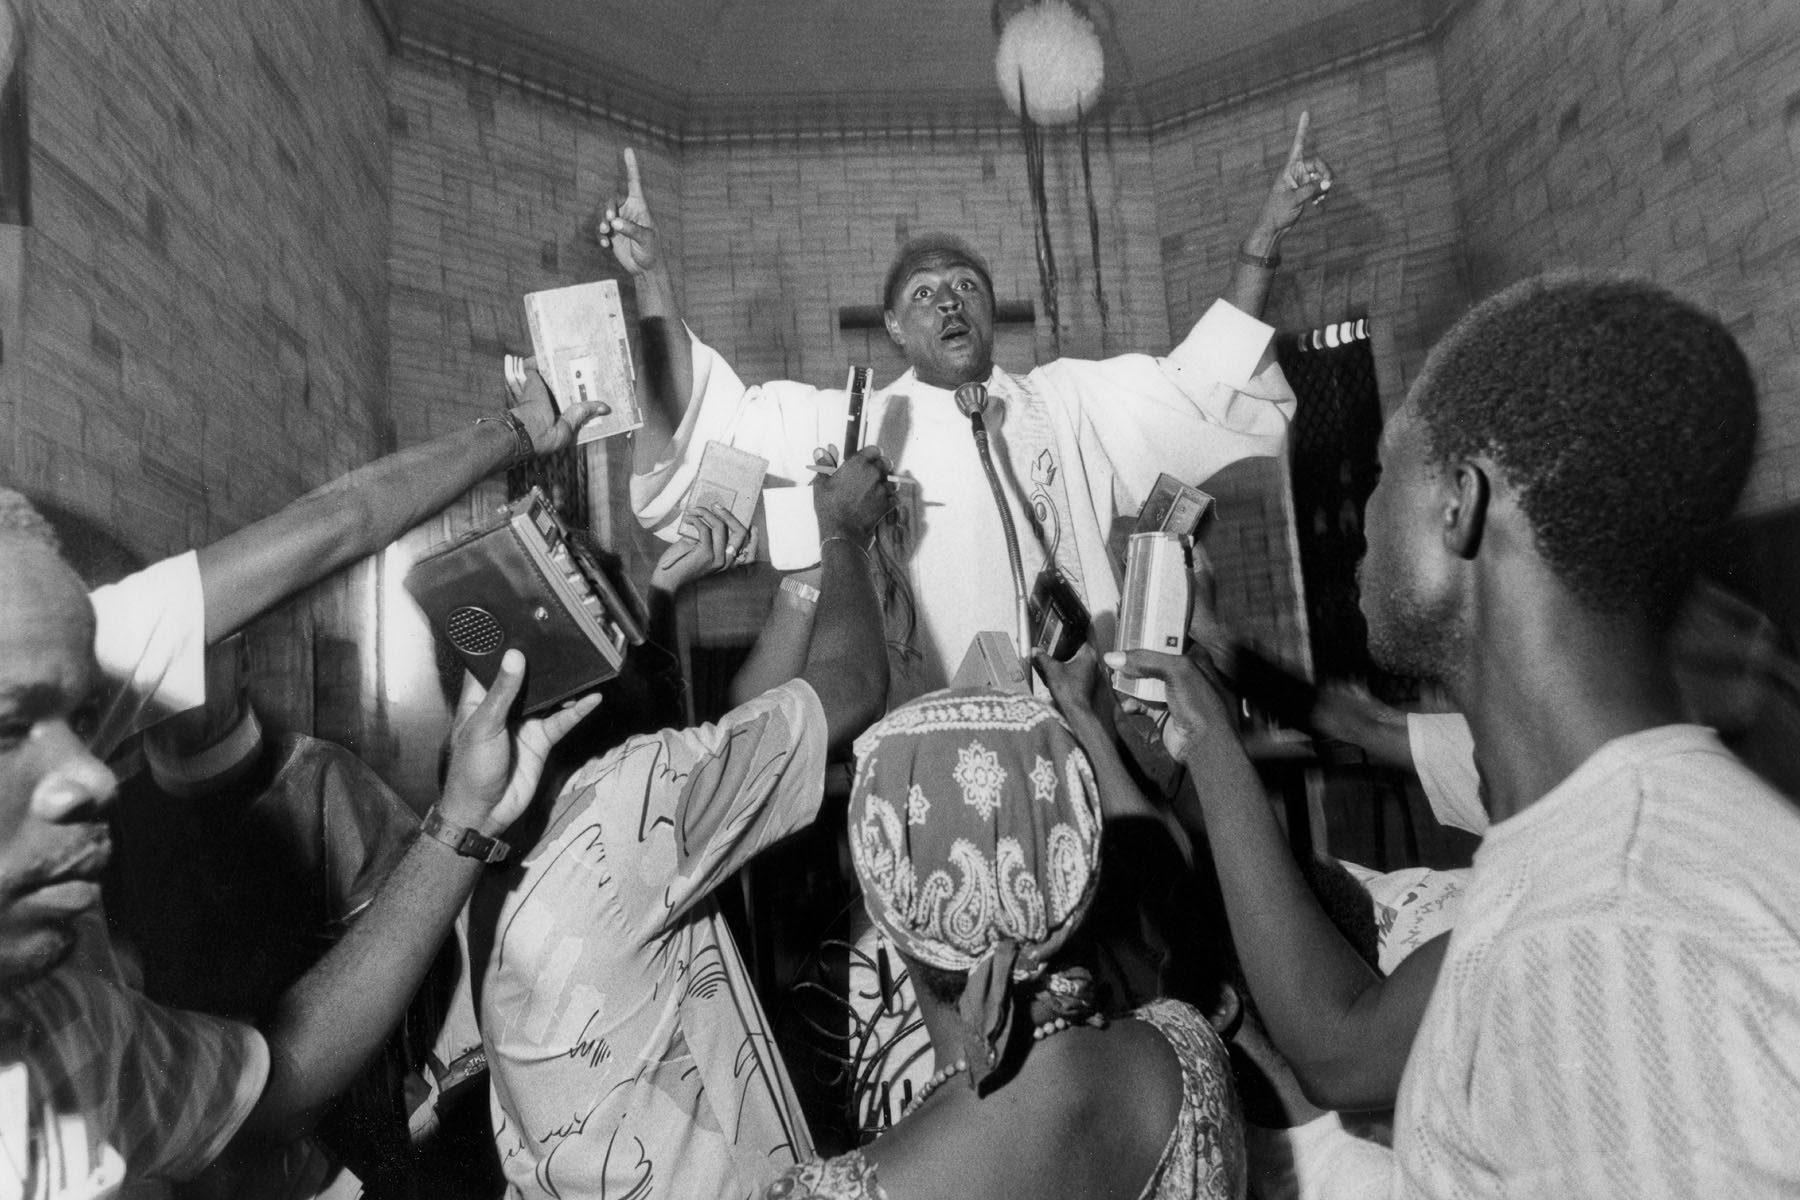 Father Devalcin preaching during a mass in the Saint-Marc church in August 1986